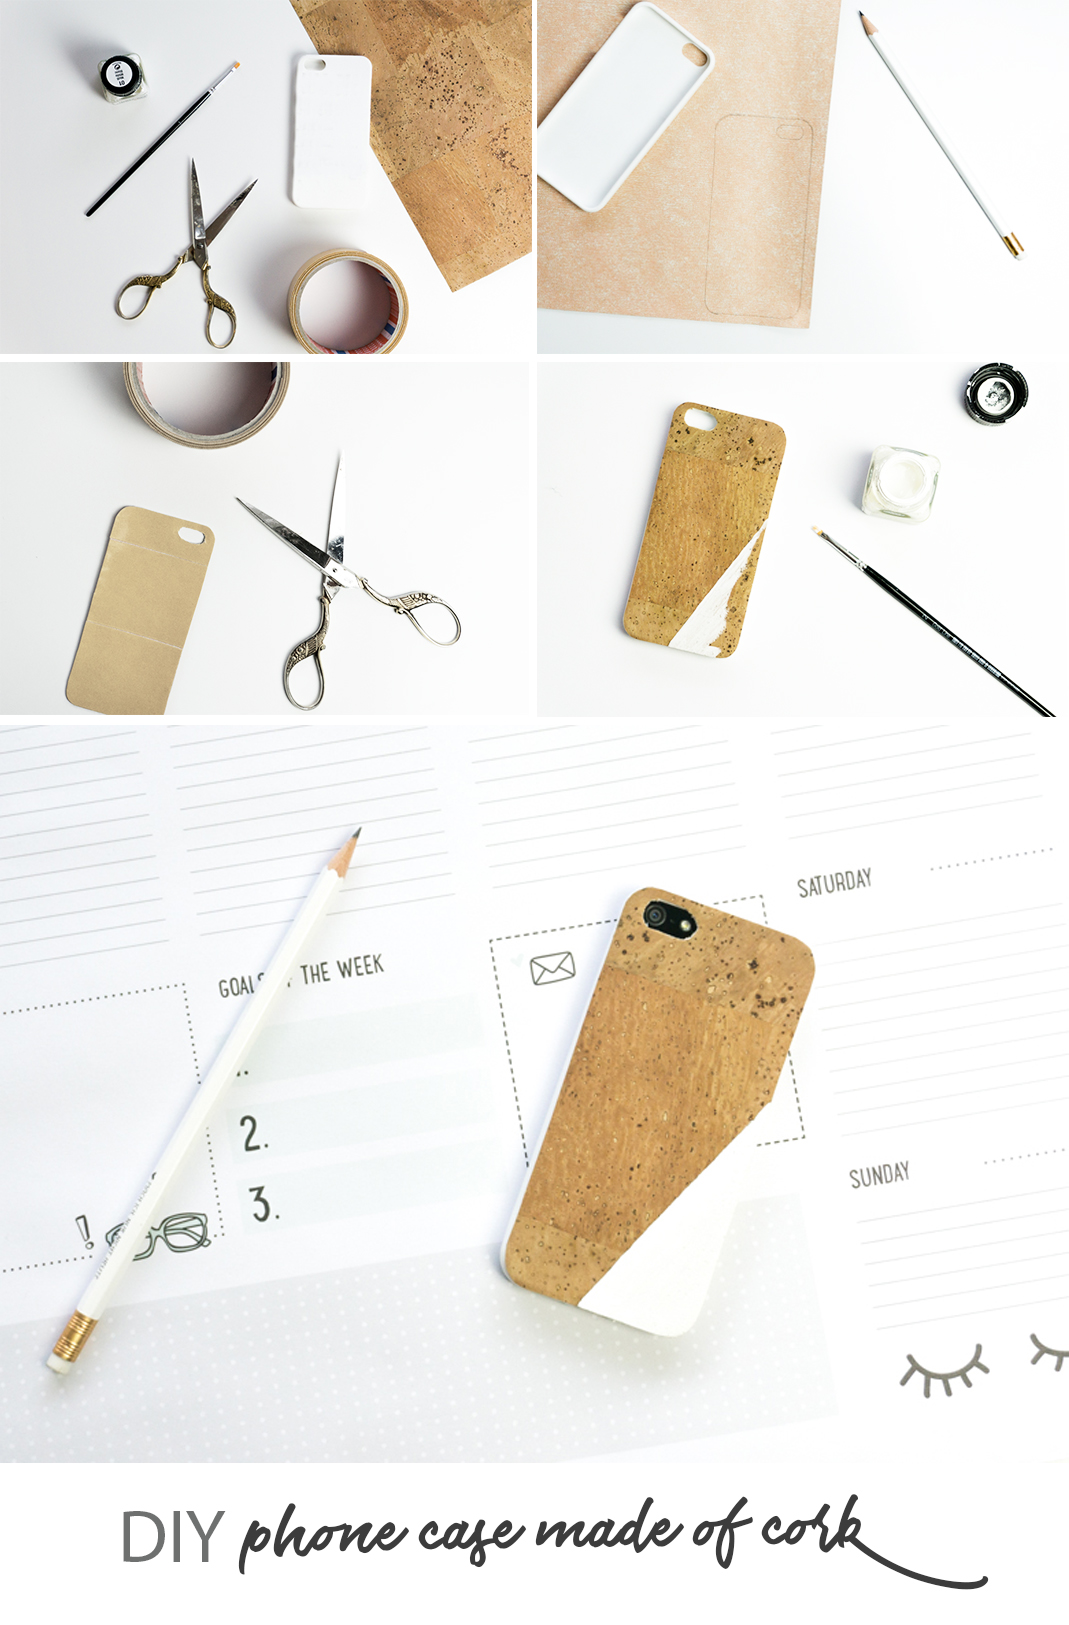 diy kork phone case schereleimpapier diy blog f r. Black Bedroom Furniture Sets. Home Design Ideas